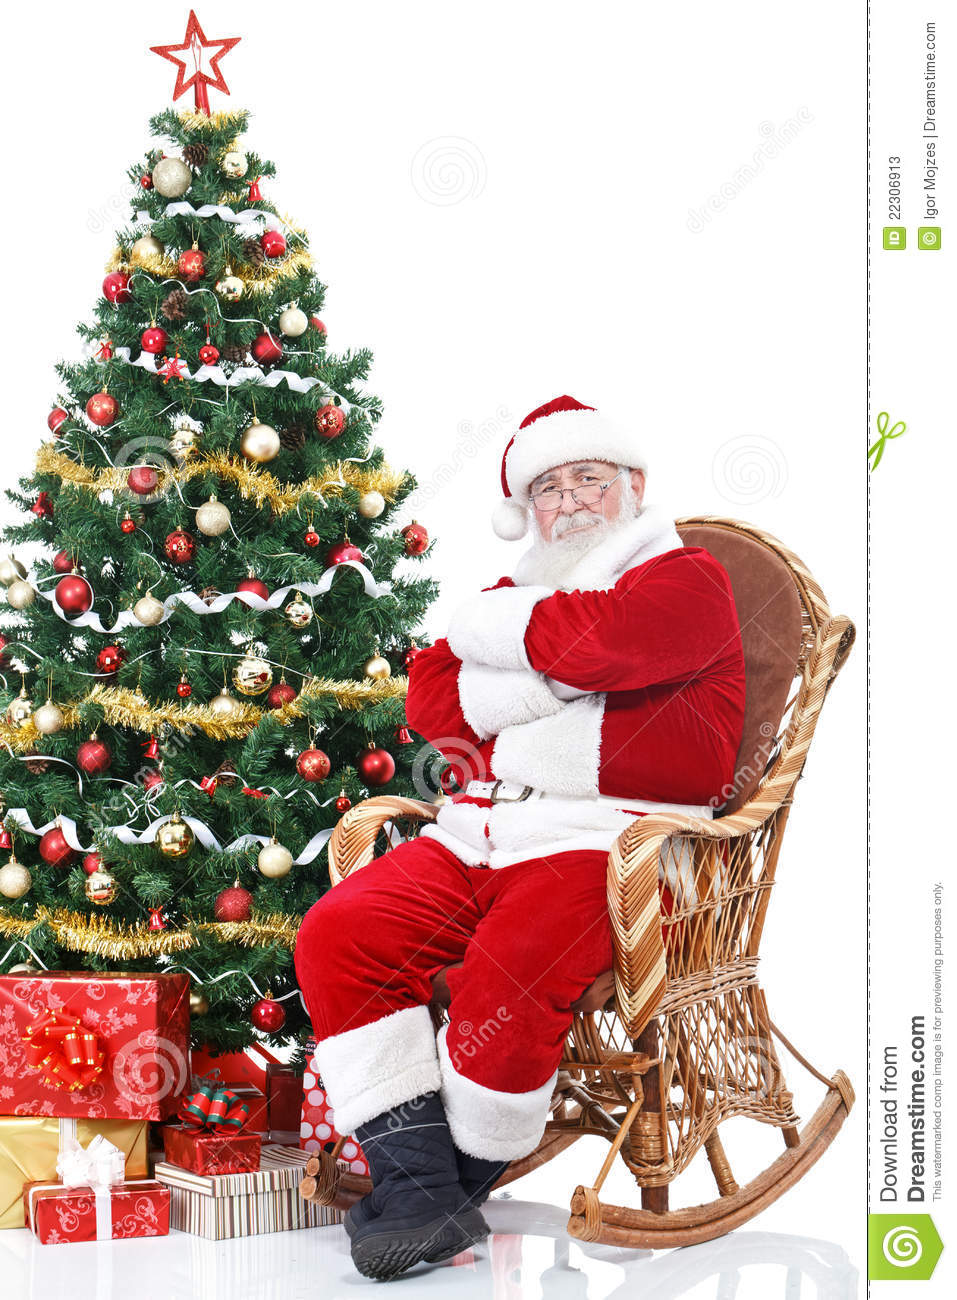 Santa Claus Sitting In Rocking Chair Stock Image Image